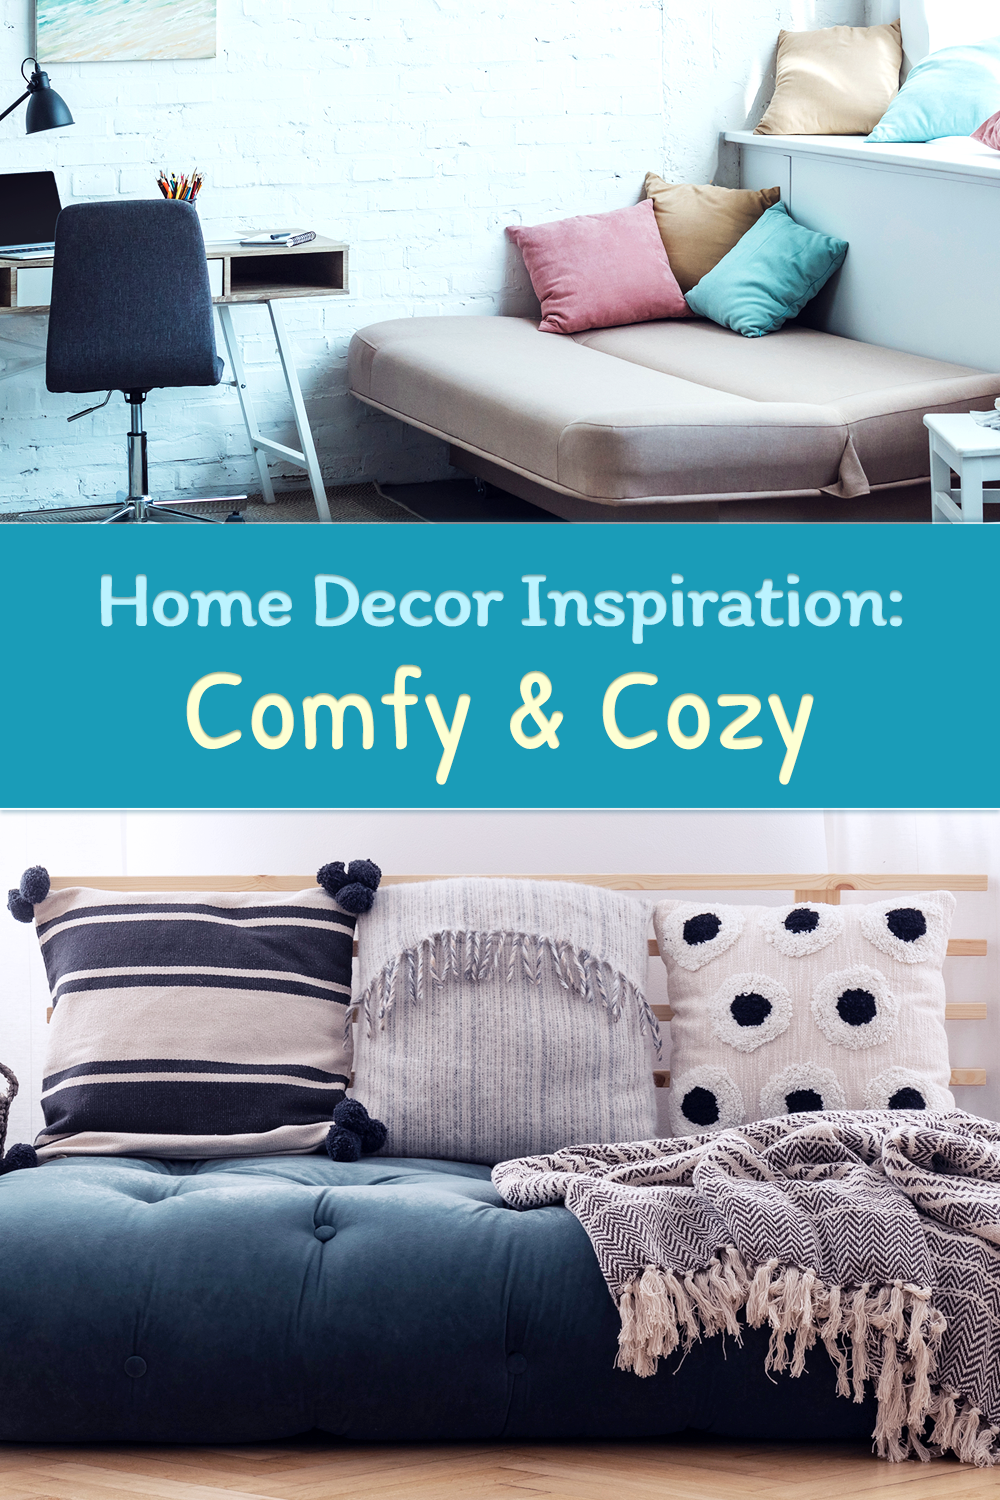 Free Room Design Tool: Get Decorating Tips, Browse Pictures For Kitchen, Bathroom